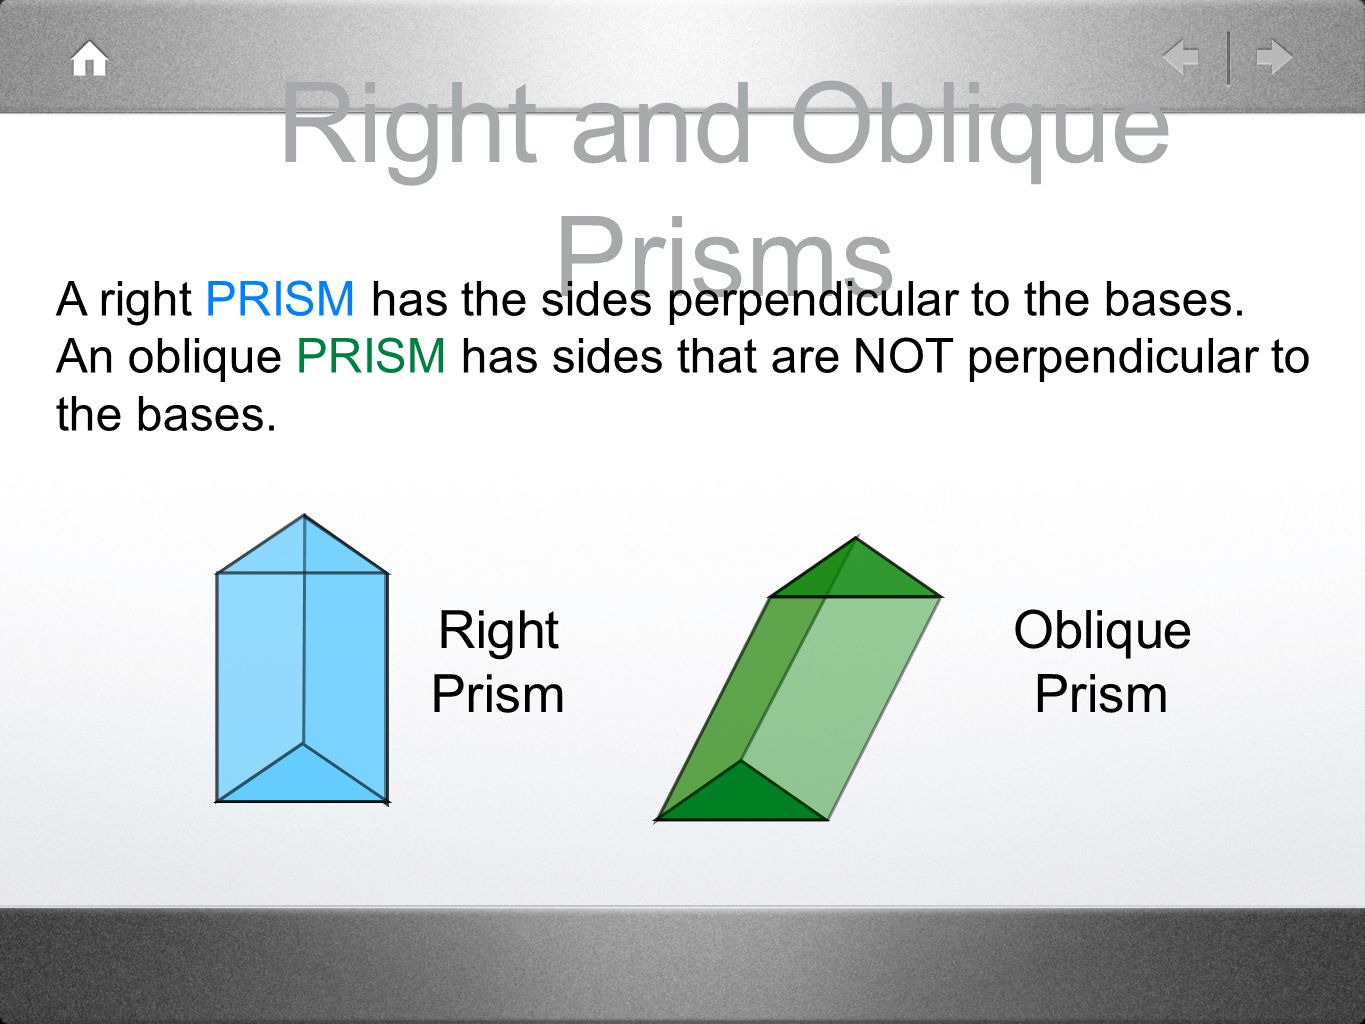 Right and Oblique Prisms